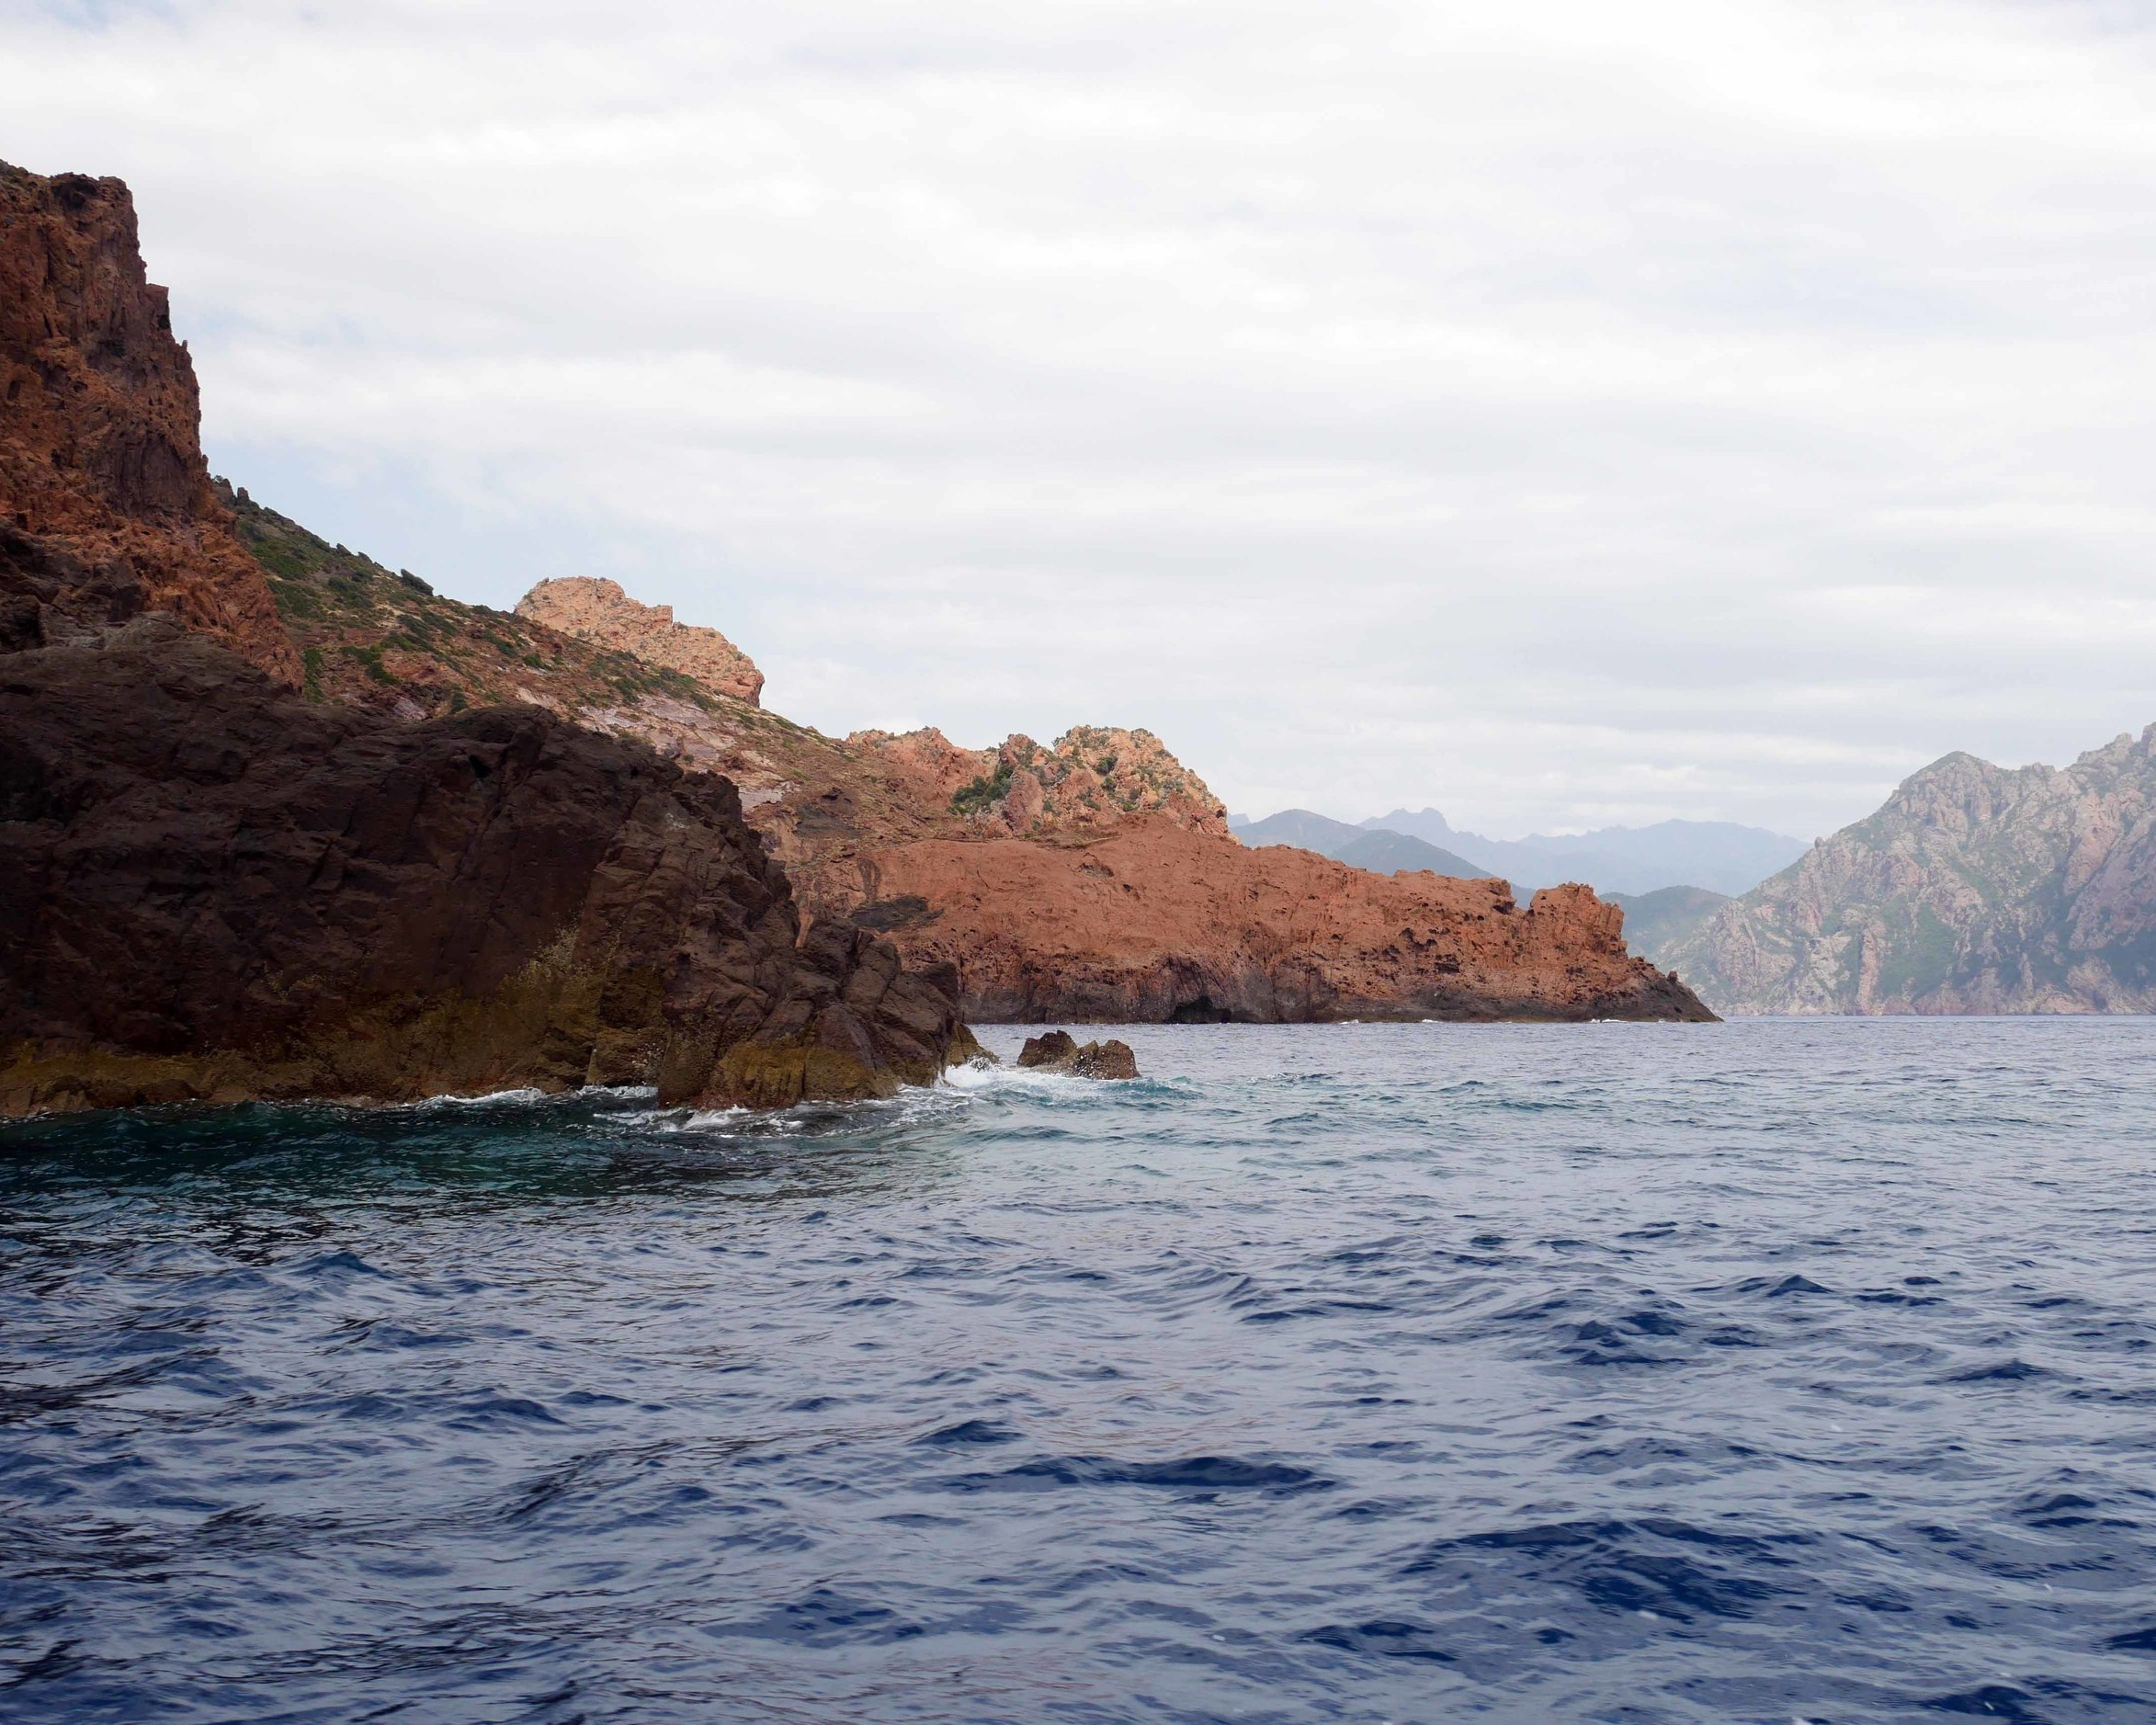 Corsica's epic landscapes will leave even the most well-travelled at a loss for words